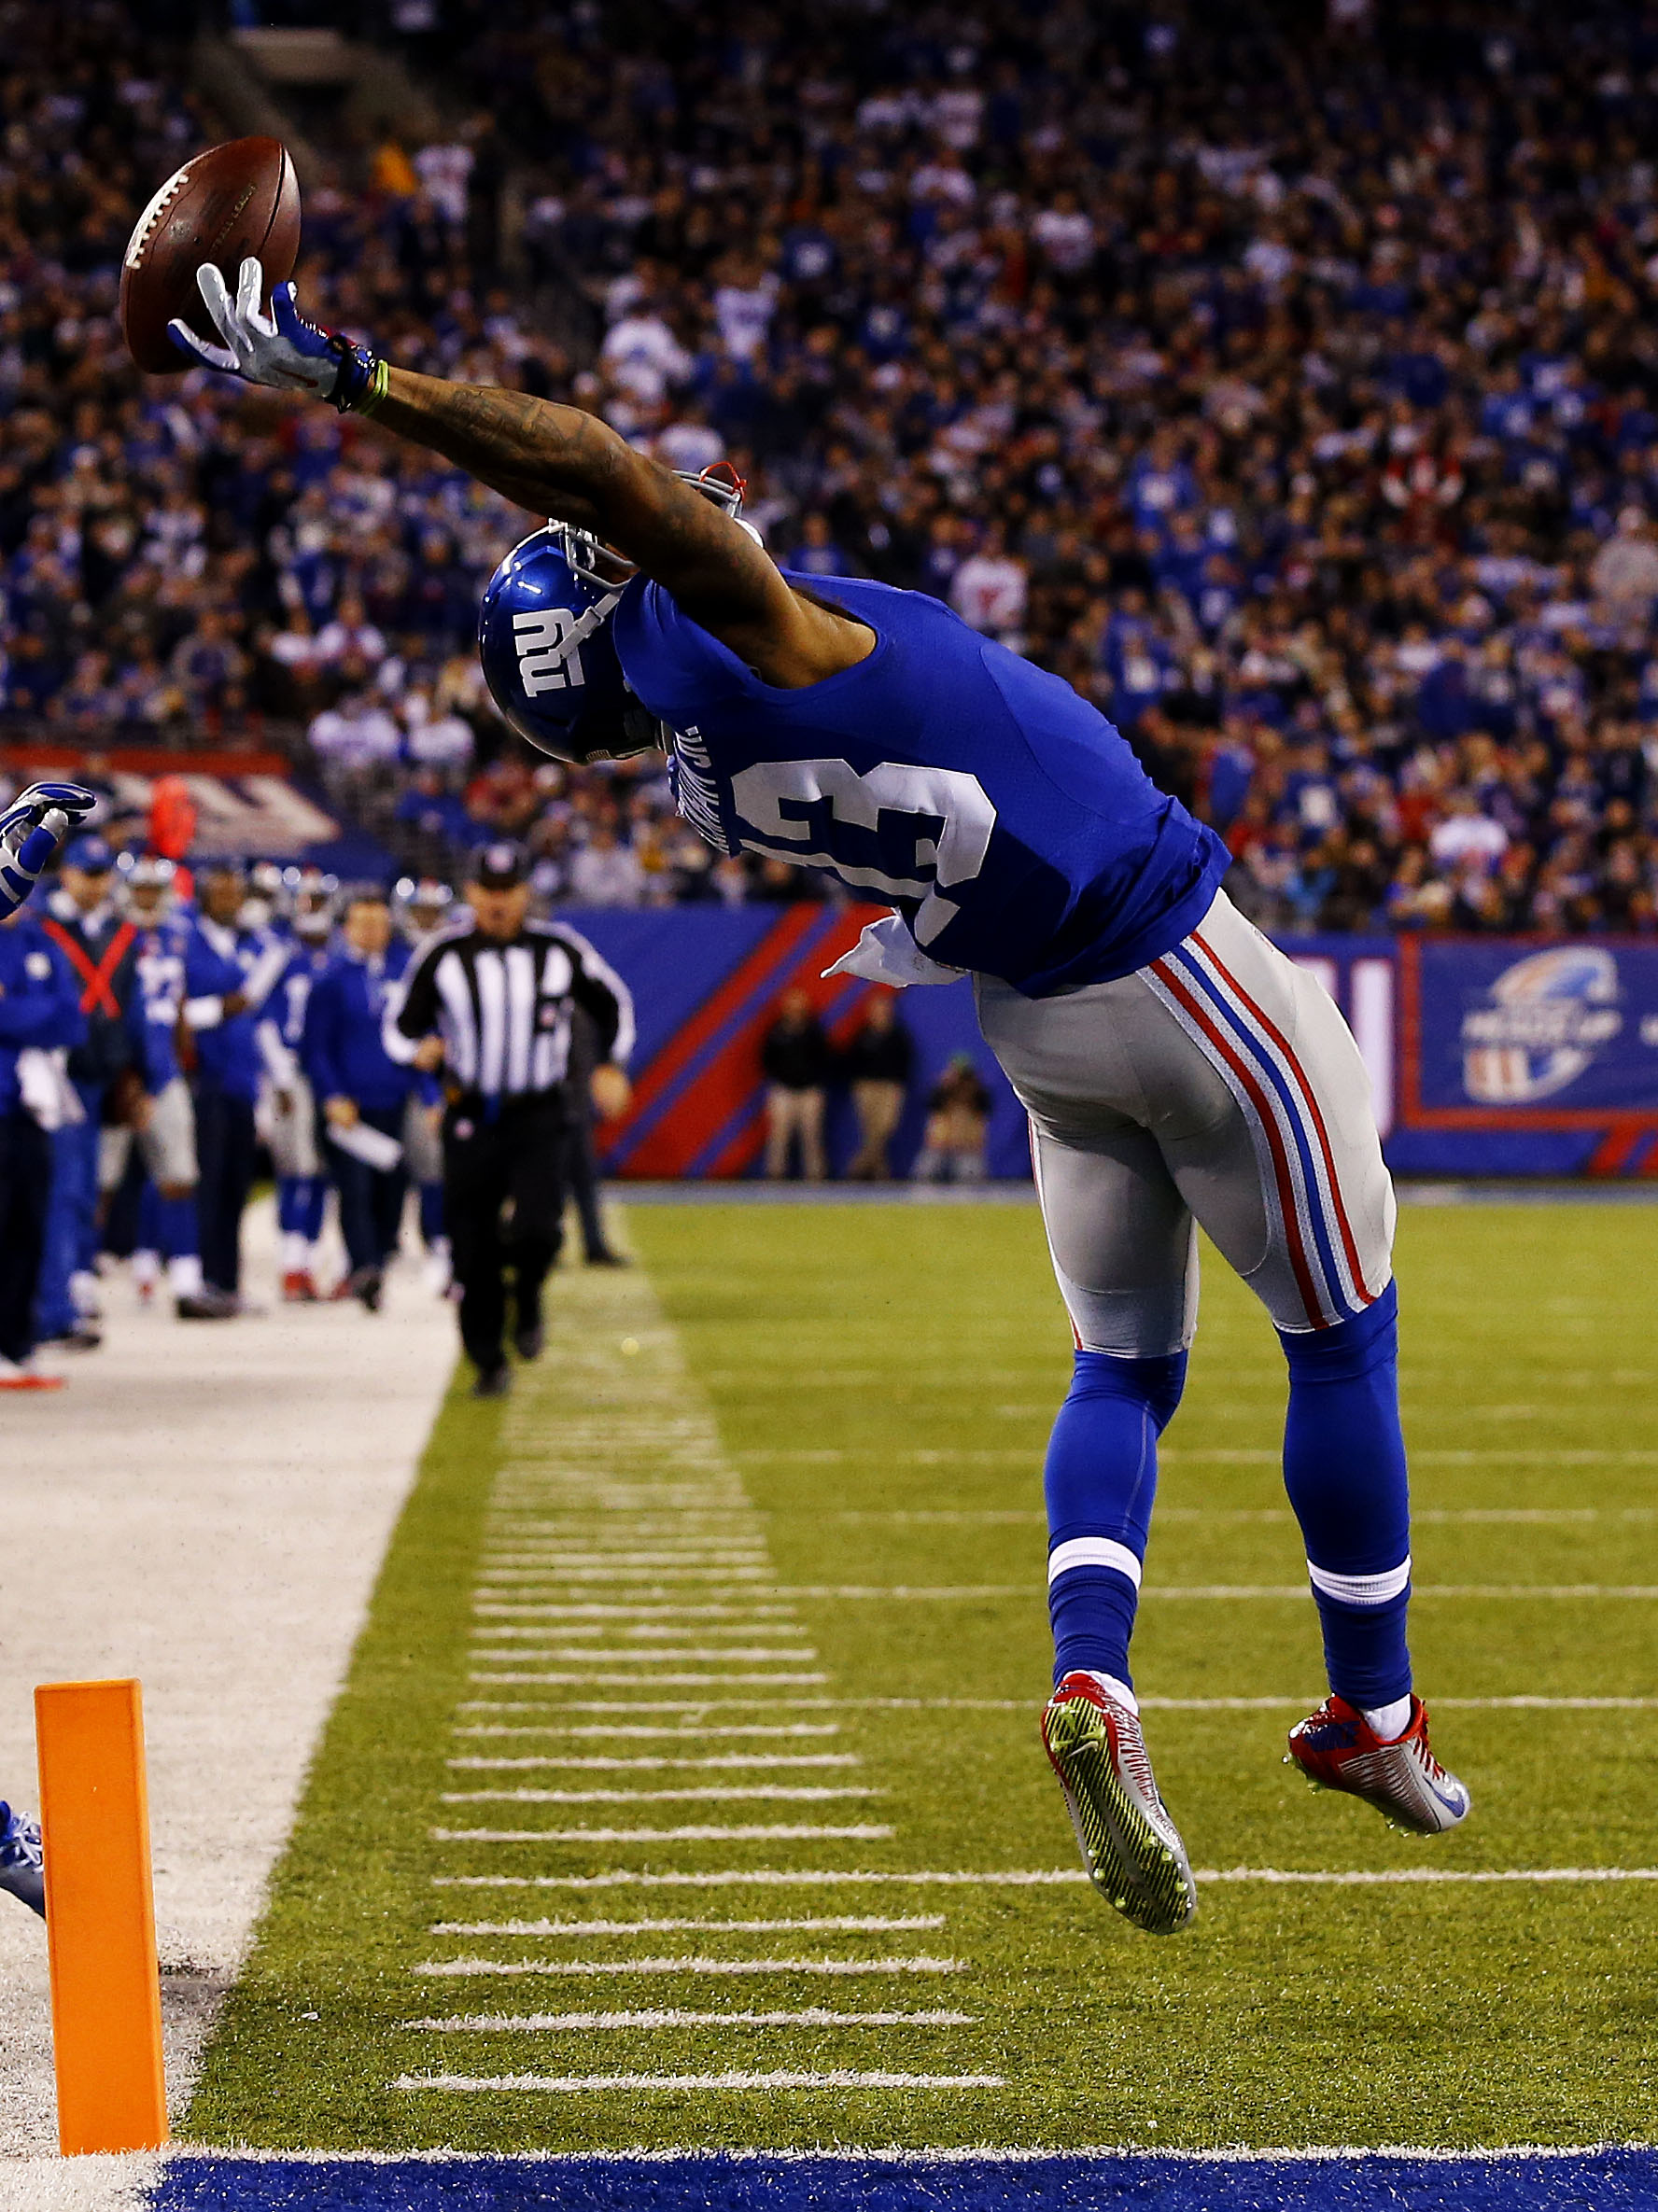 Odell Beckham Jr. of the New York Giants scores a touchdown in the second quarter against the Dallas Cowboys at MetLife Stadium on Nov. 23, 2014 in East Rutherford, New Jersey.  (credit: Al Bello/Getty Images)